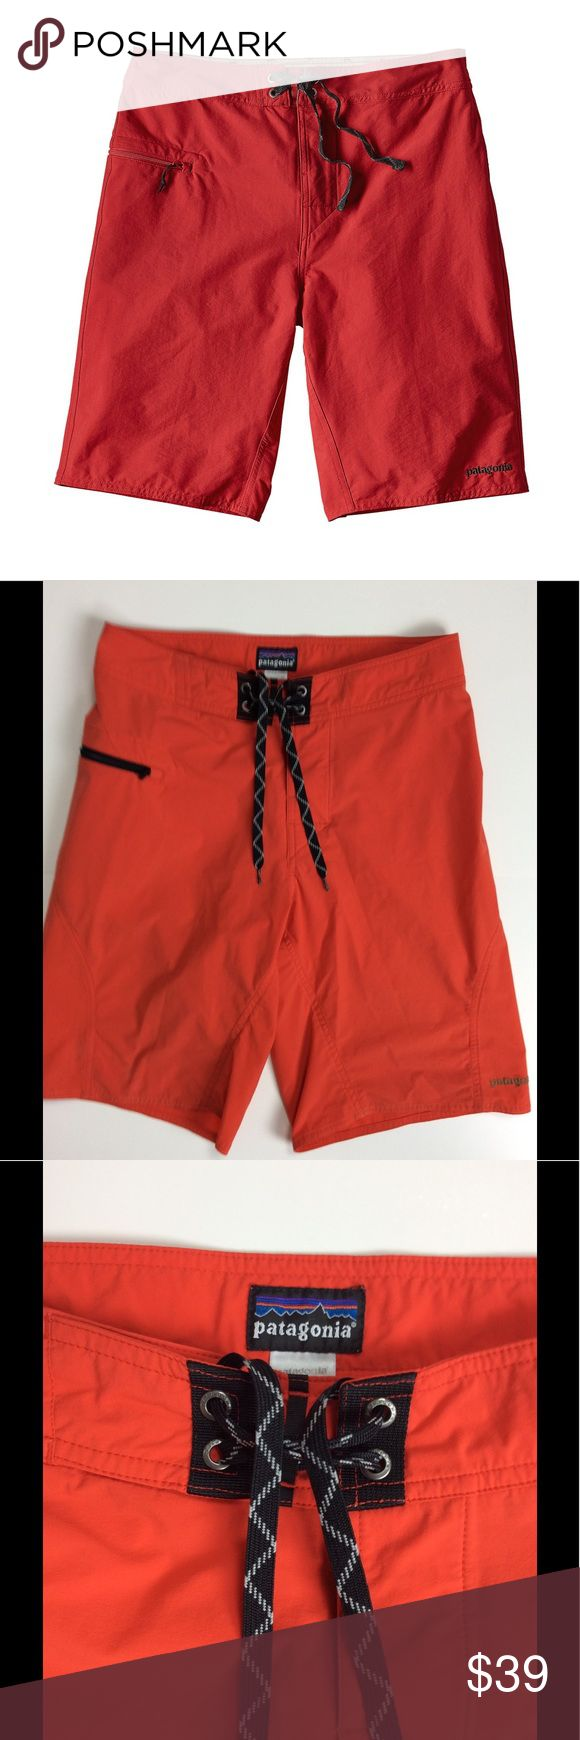 """Patagonia Stretch Wavefarer Board Shorts Men's Patagonia Stretch Wavefarer Board Shorts. Size 28; 14"""" width, 10"""" rise, 10"""" inseam. 100% polyester. """"Fire"""" color. Contoured waistband; flat-lying fly with a single rubber button. Ladder lock drawstring closure, turned and barracked drawstring is durable and adds security. Self-draining pocket on right hip has a noncorroding, recyclable plastic zipper with internal key loop and zipper pull. Hip pocket doubles as a self-storage pouch. In very good…"""